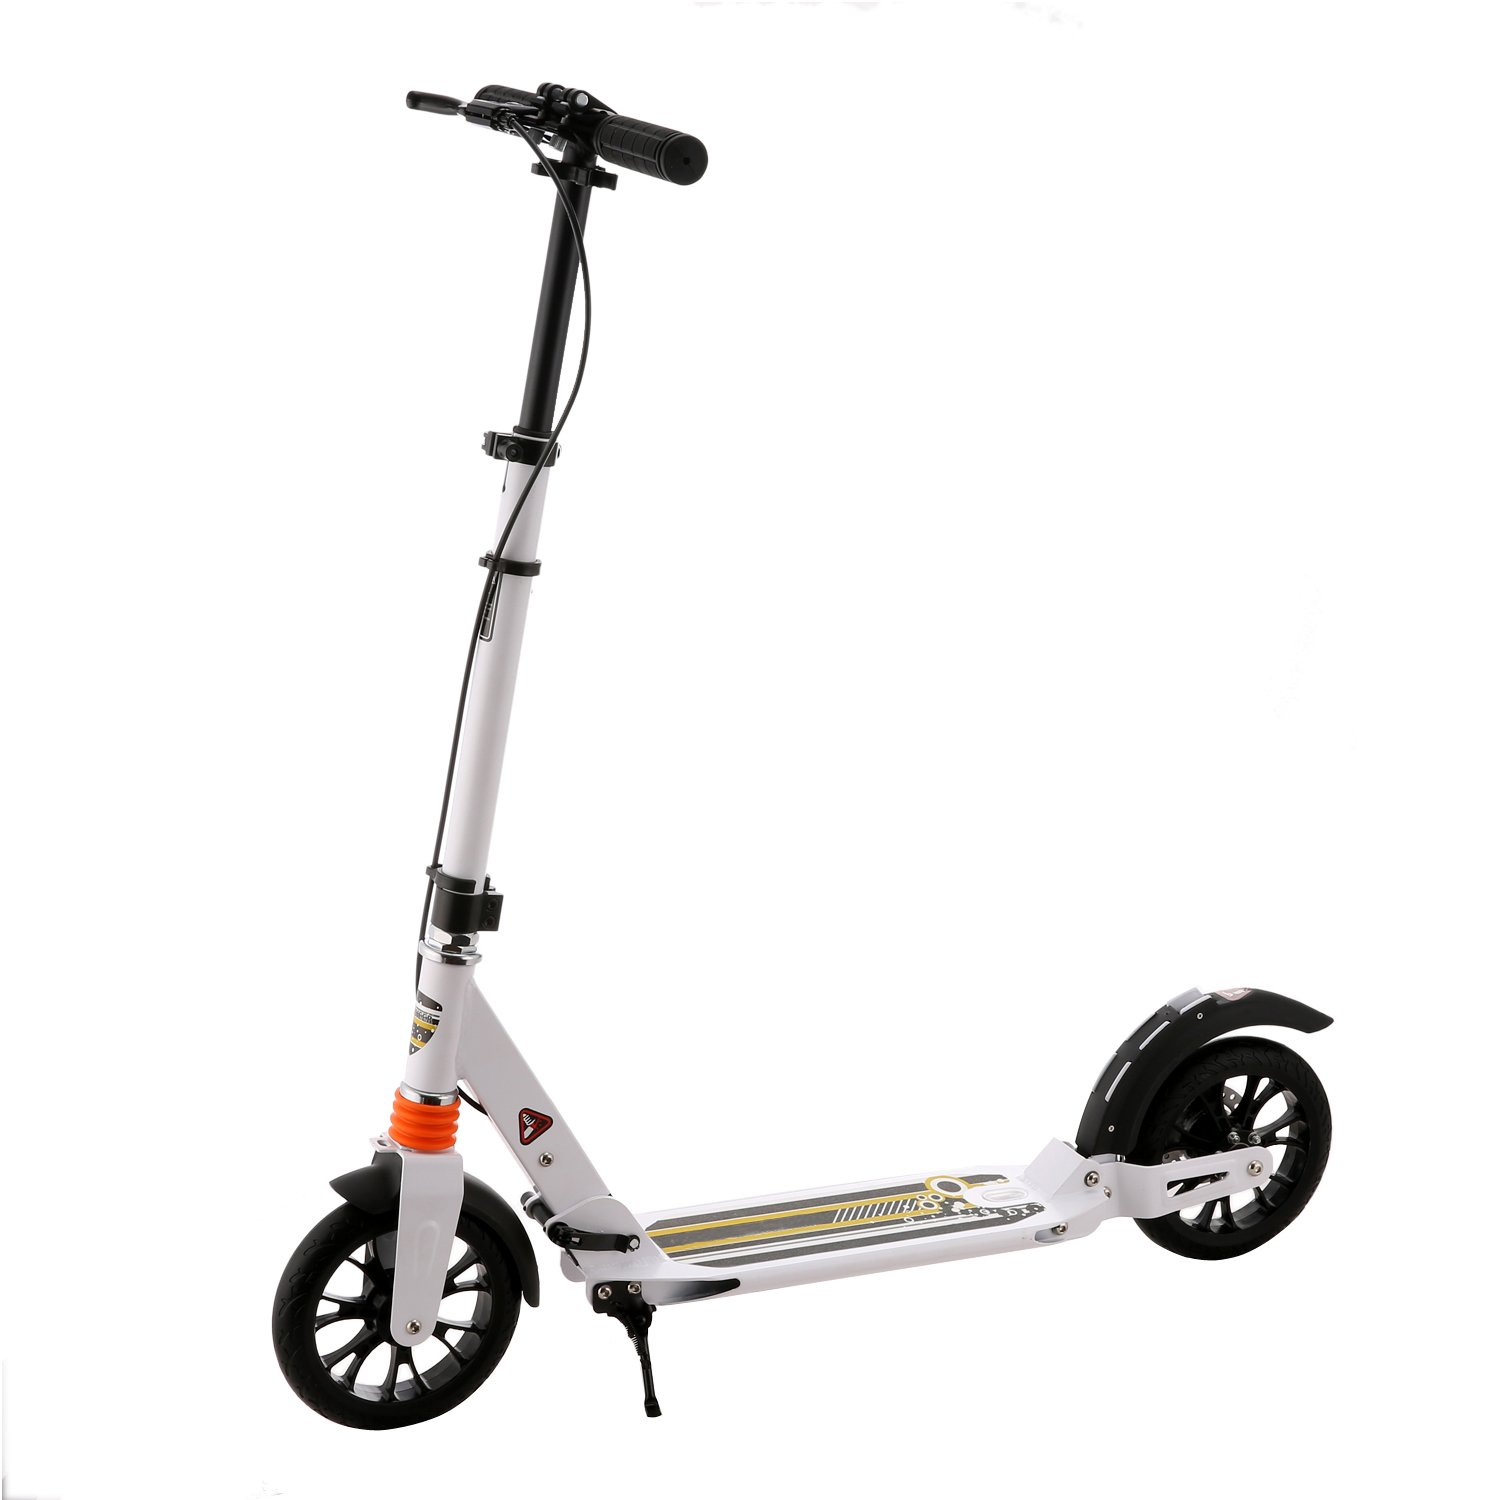 Foldable Kick Scooter with Dual Suspension, 2 Rubber Wheels, Adjustable T Handlebar, Anti-Rust Paint Foot Rear Brakes for Adult, Teens and Kids